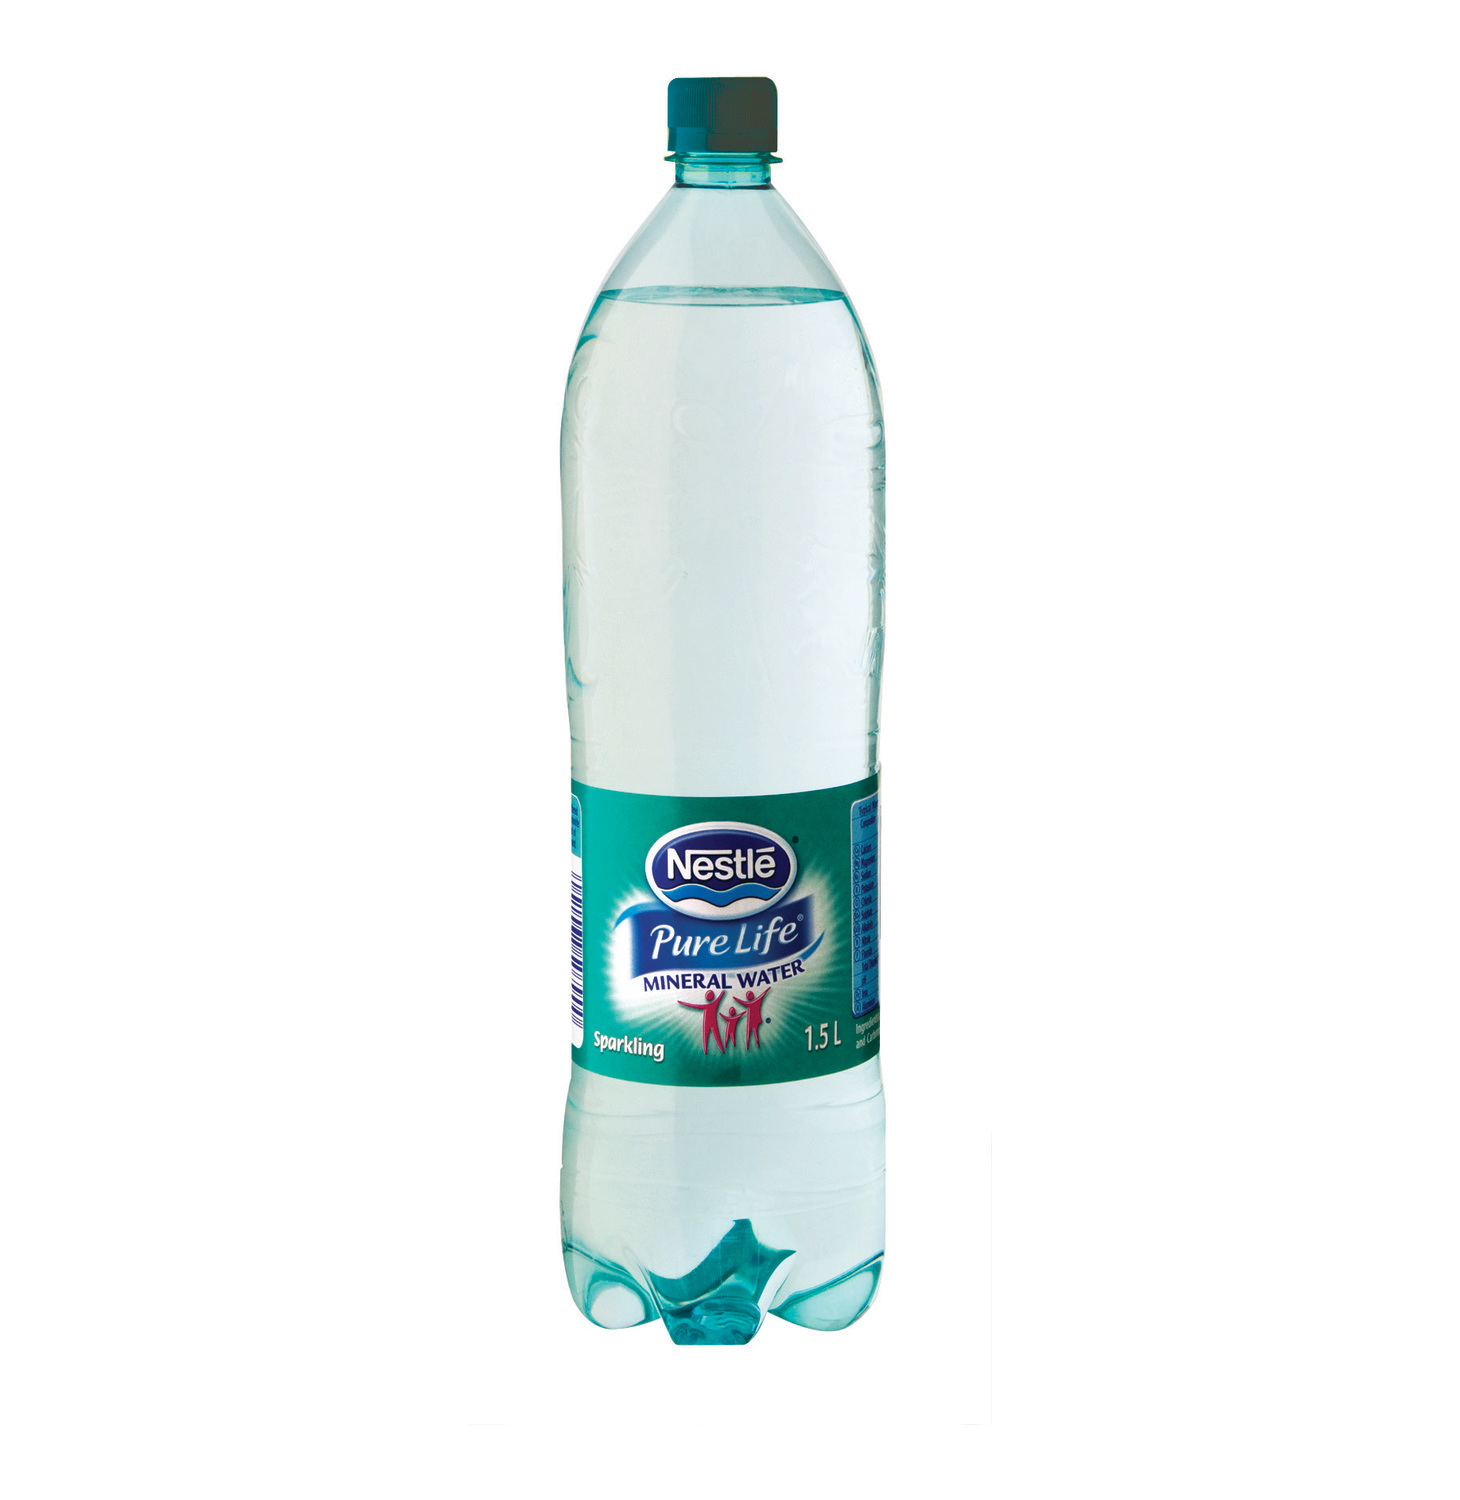 NESTLE Pure Life Mineral Water Sparkling (6 x 1.5L)